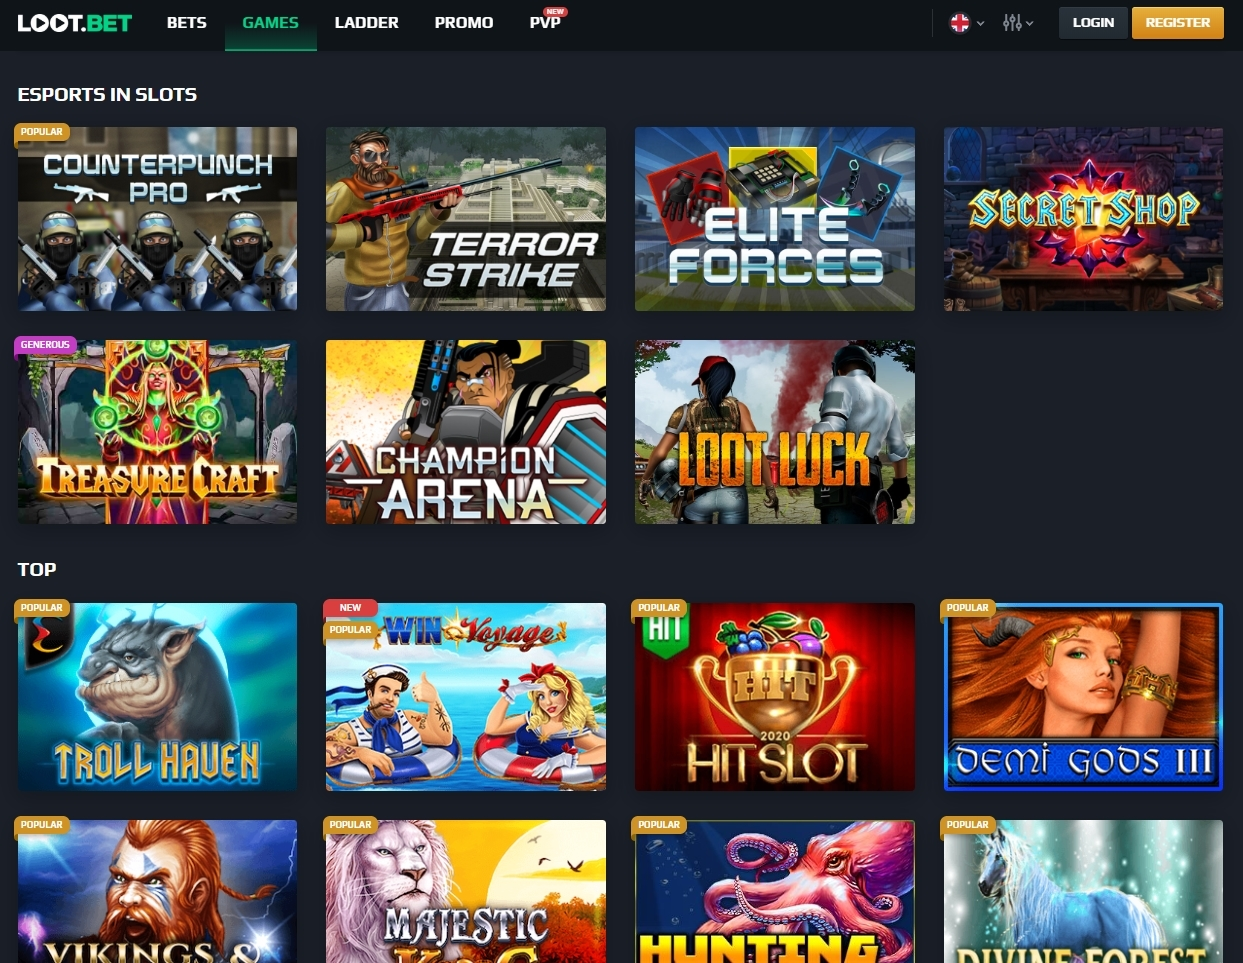 lootbet 2 - The Right Place to Bet on Esports with Bitcoin and Ethereum - LOOT.BET Review